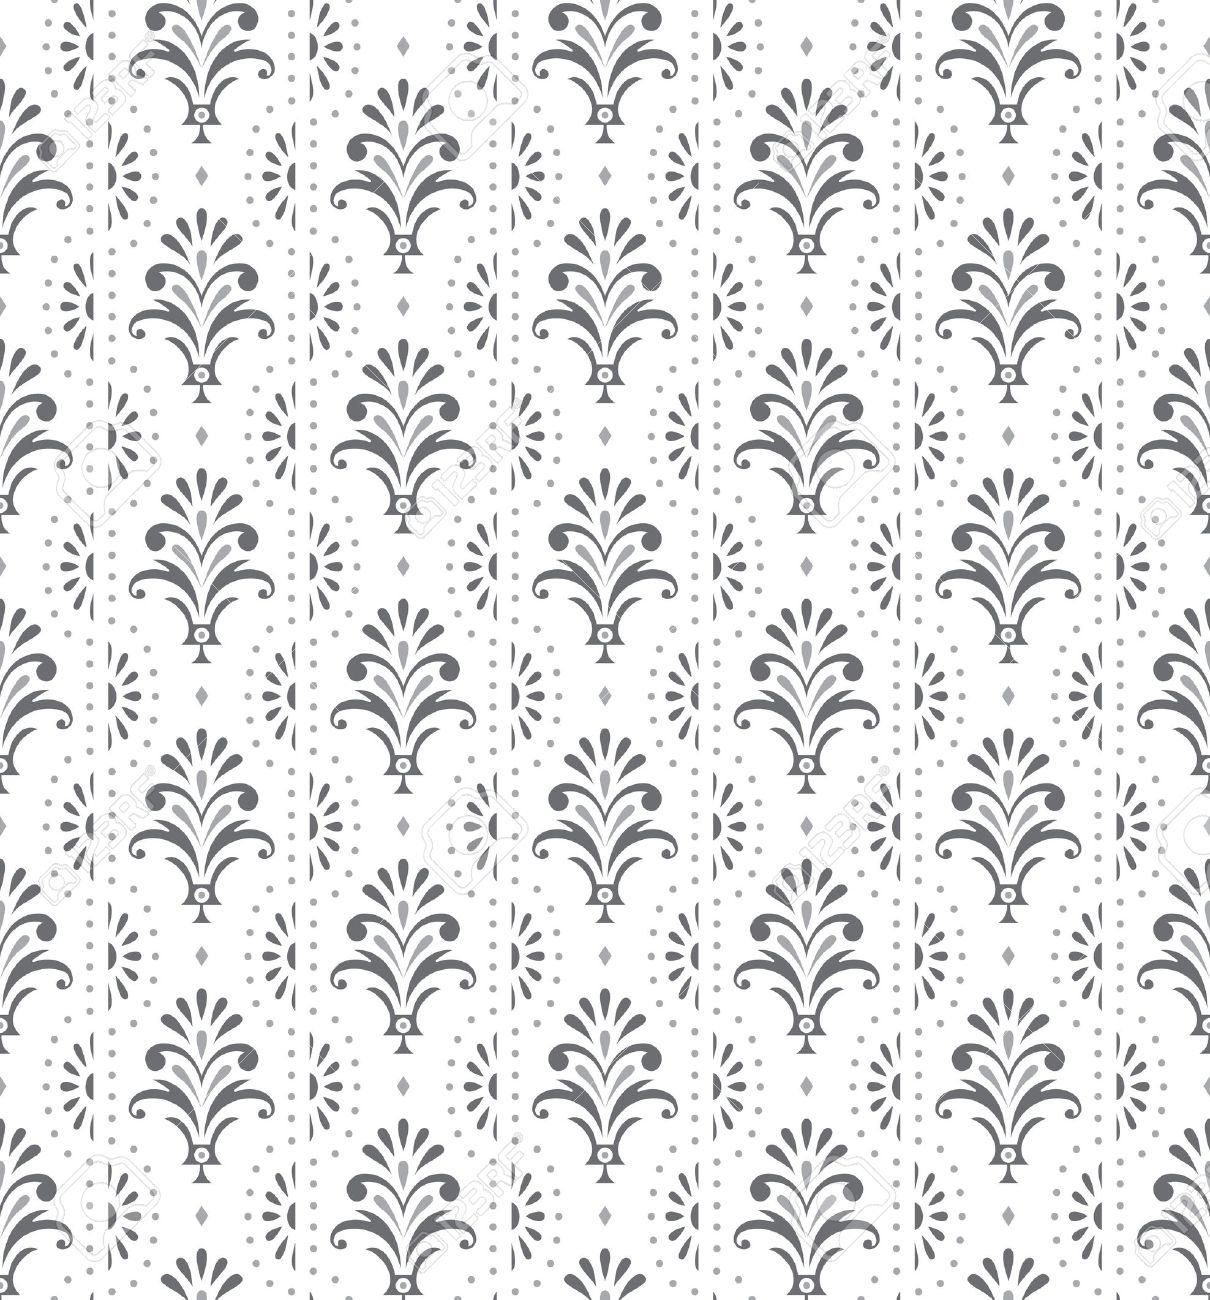 Silver Seamless Traditional Floral Wallpaper Royalty Free Cliparts